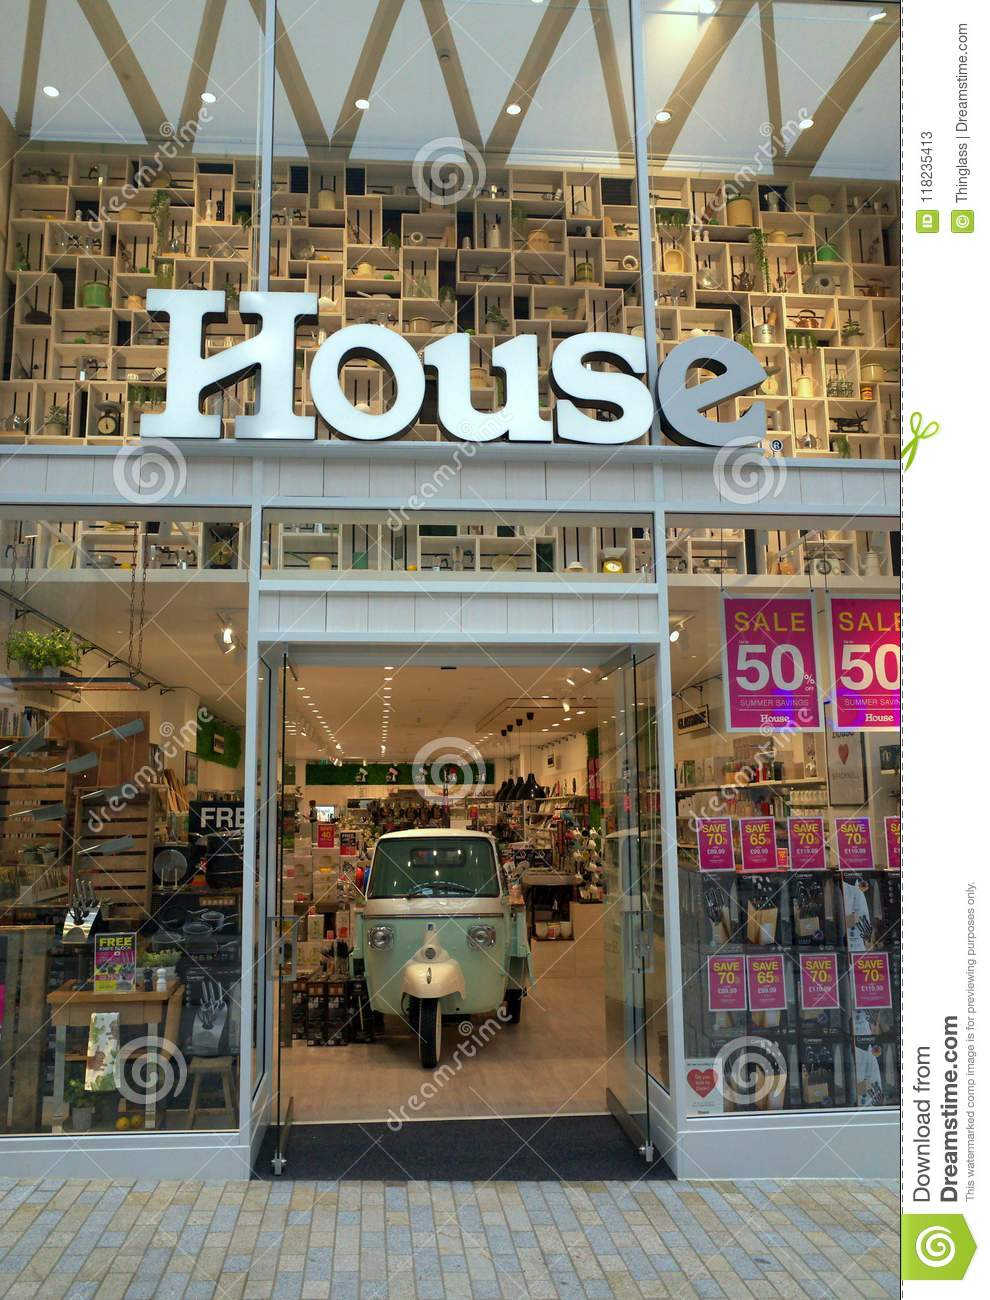 home and kitchen stores butcher block tables the house ware store in bracknell england may 30 2018 lexicon shopping center is an australian wares retailer which